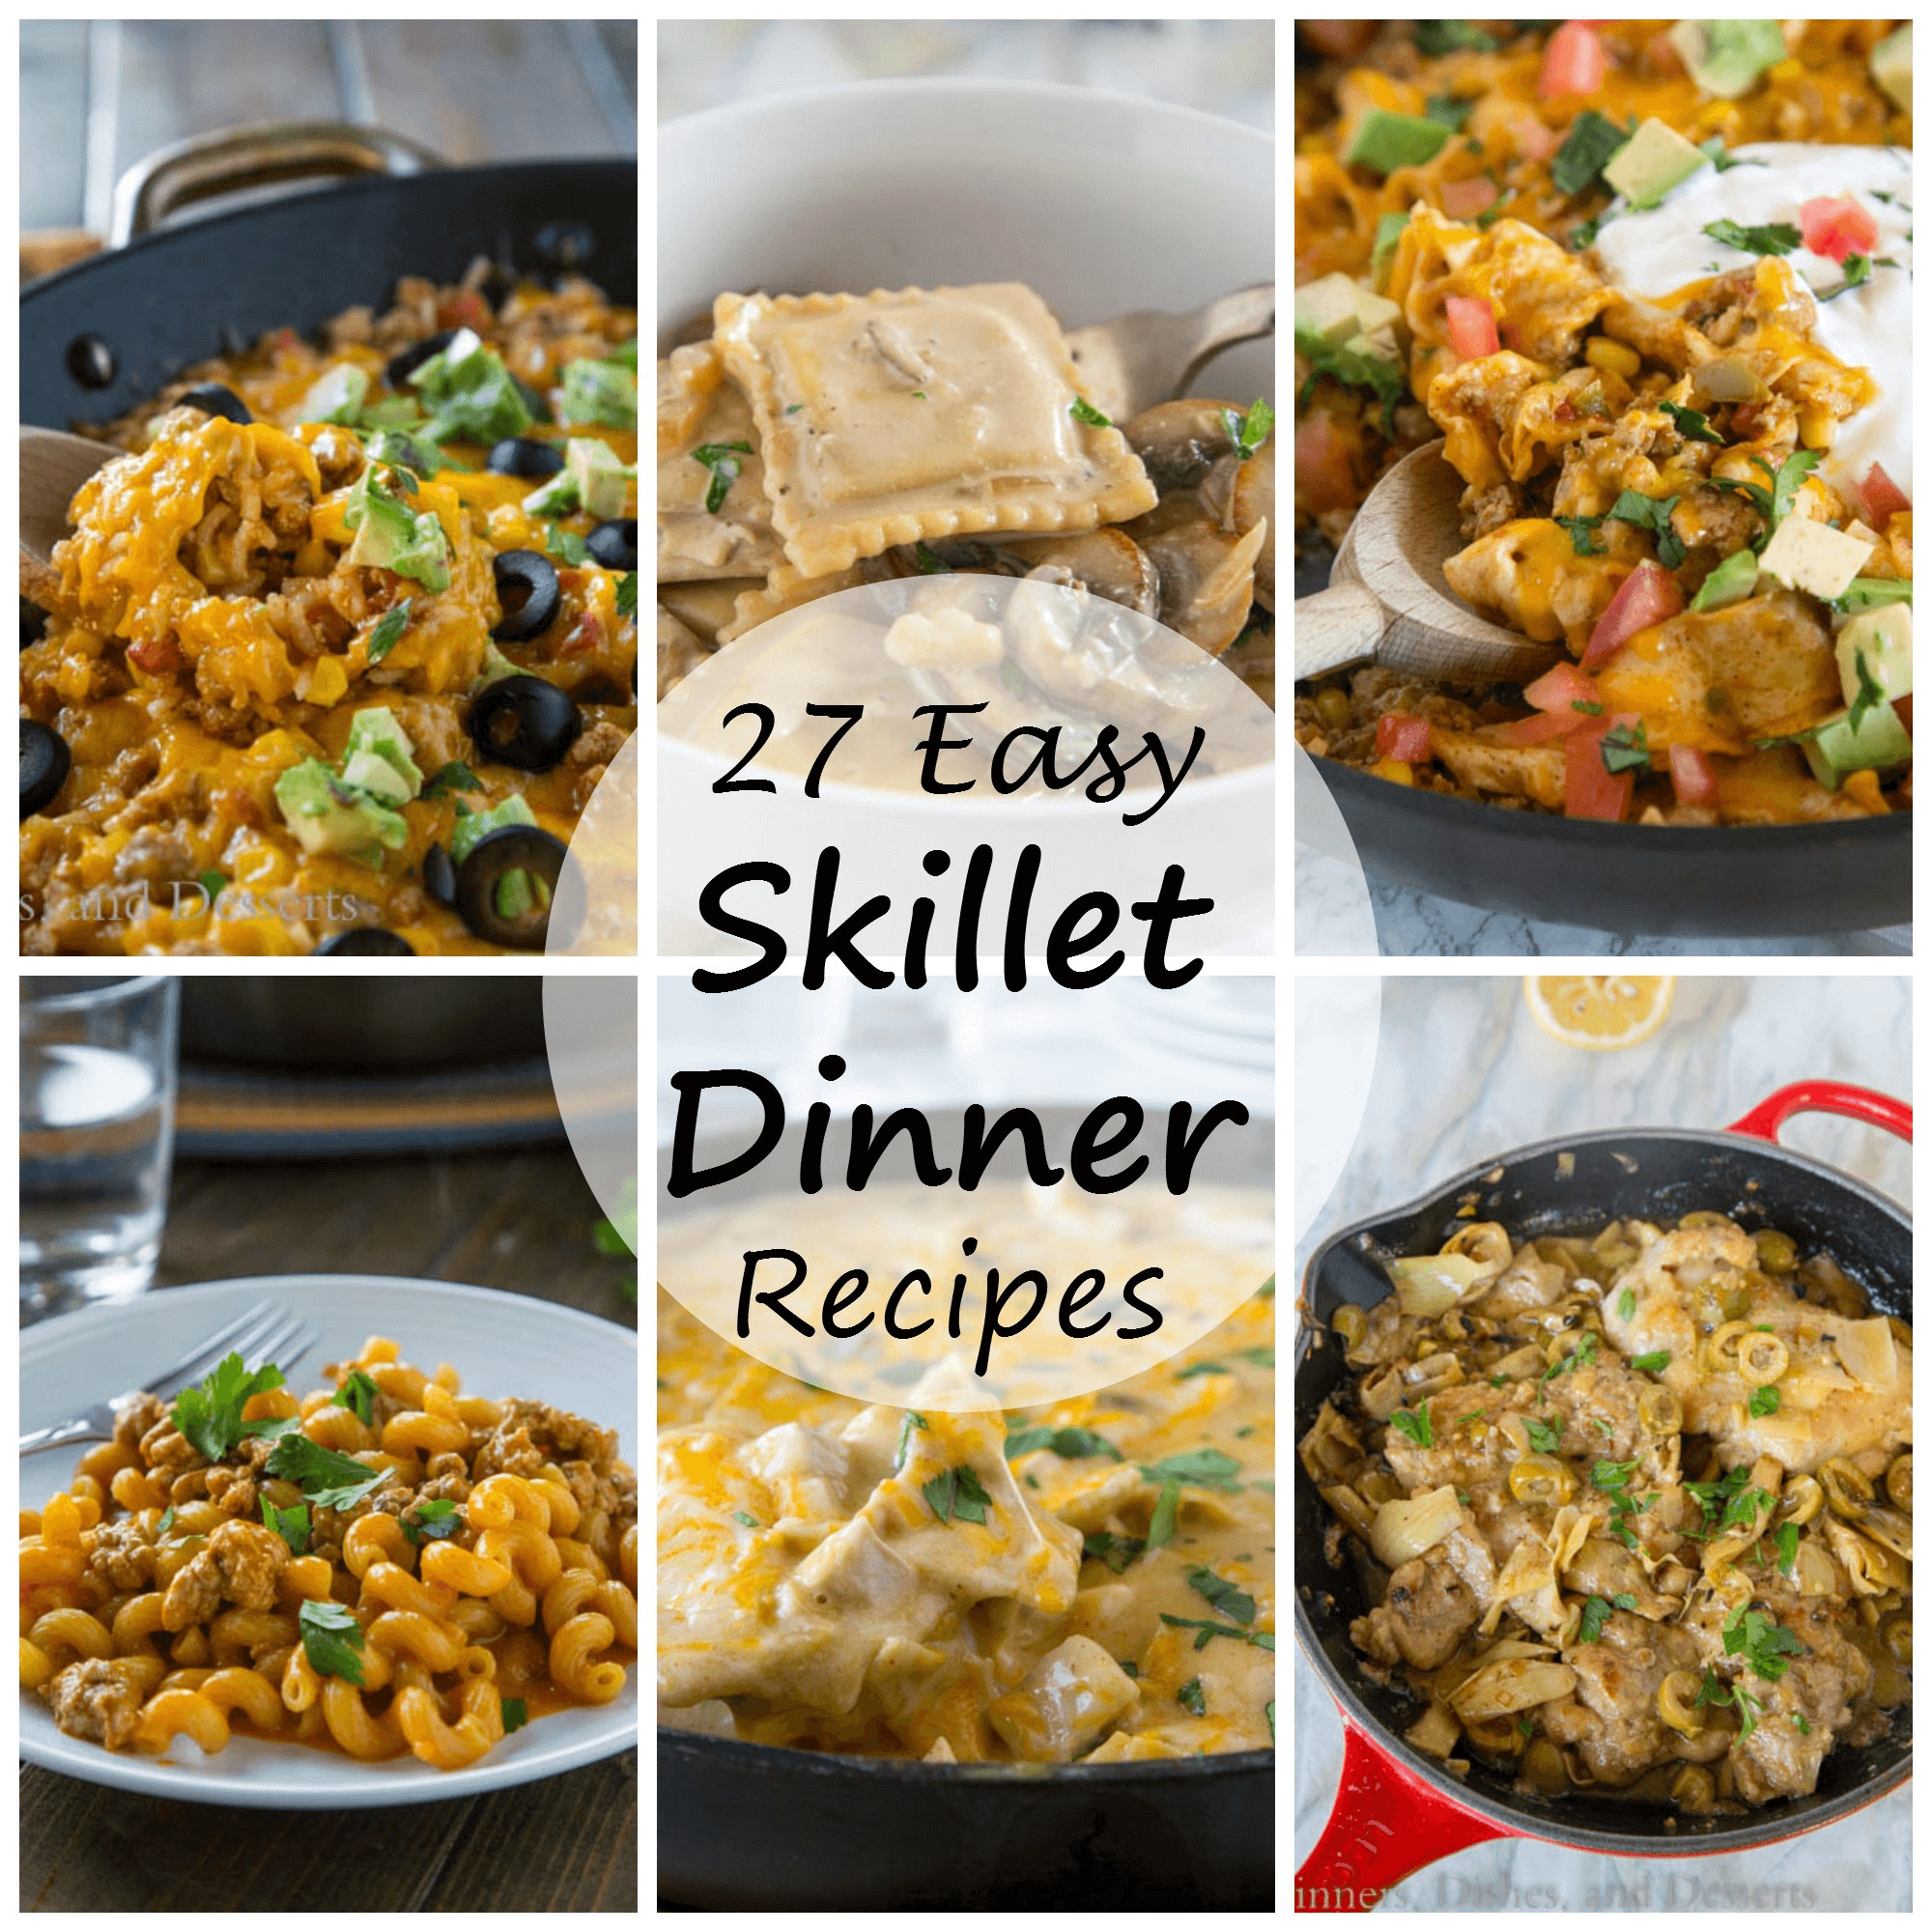 Skillet Dinner Recipes  27 Skillet Dinner Recipes Dinners Dishes and Desserts